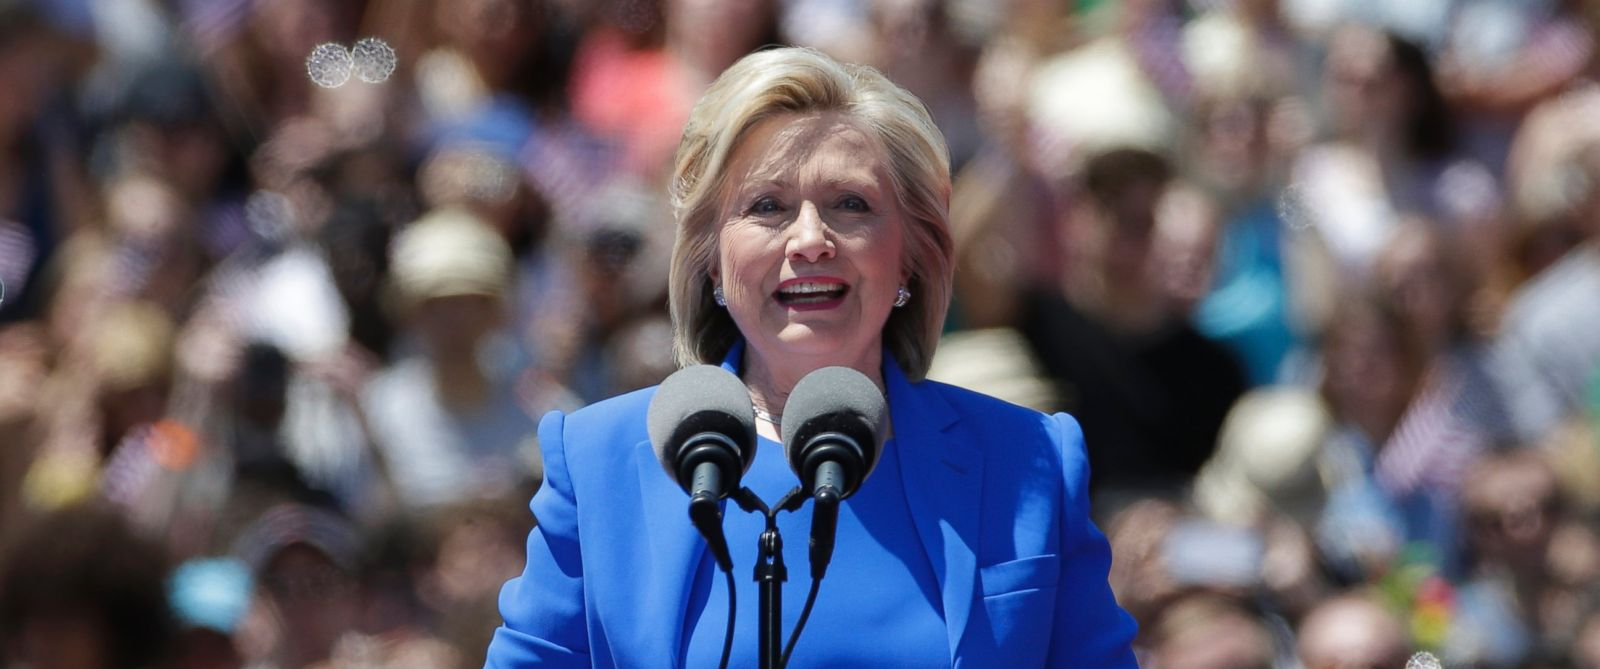 """PHOTO: Democratic presidential candidate Hillary Clinton delivers her """"official launch speech"""" at a campaign kick off rally in Franklin D. Roosevelt Four Freedoms Park on Roosevelt Island in New York City, June 13, 2015."""